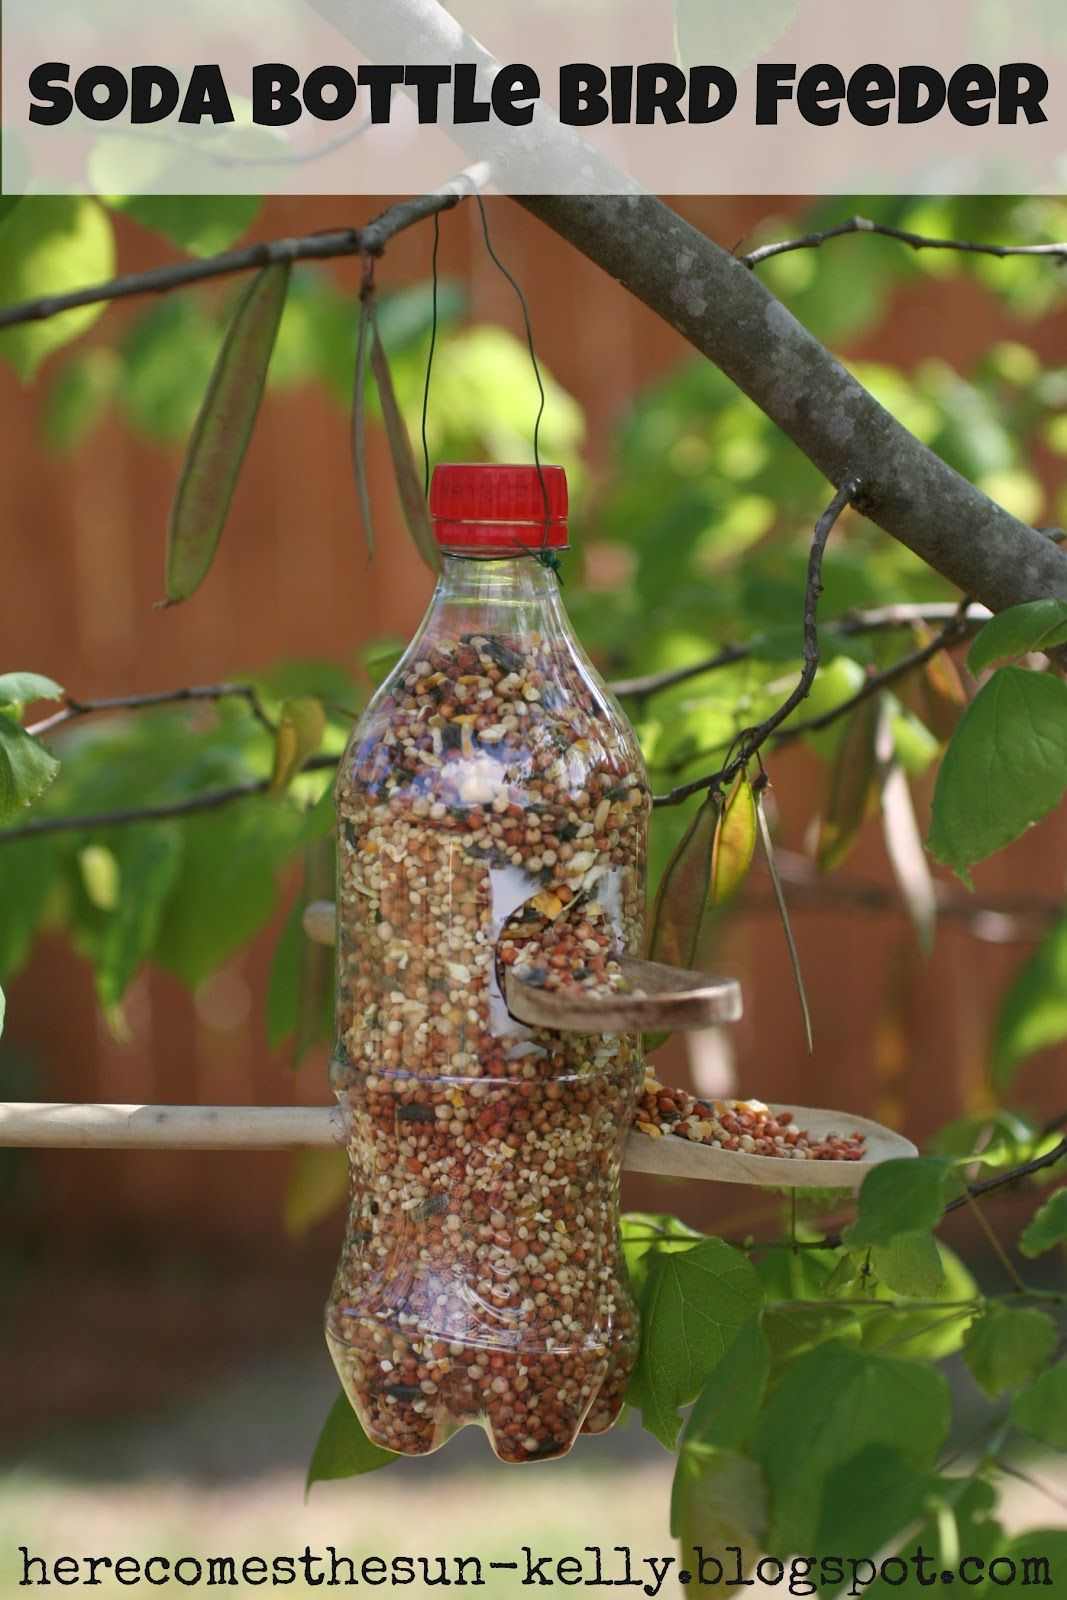 Soda Bottle Bird Feeder | Garden | Pinterest | Soda bottles, Bird ...